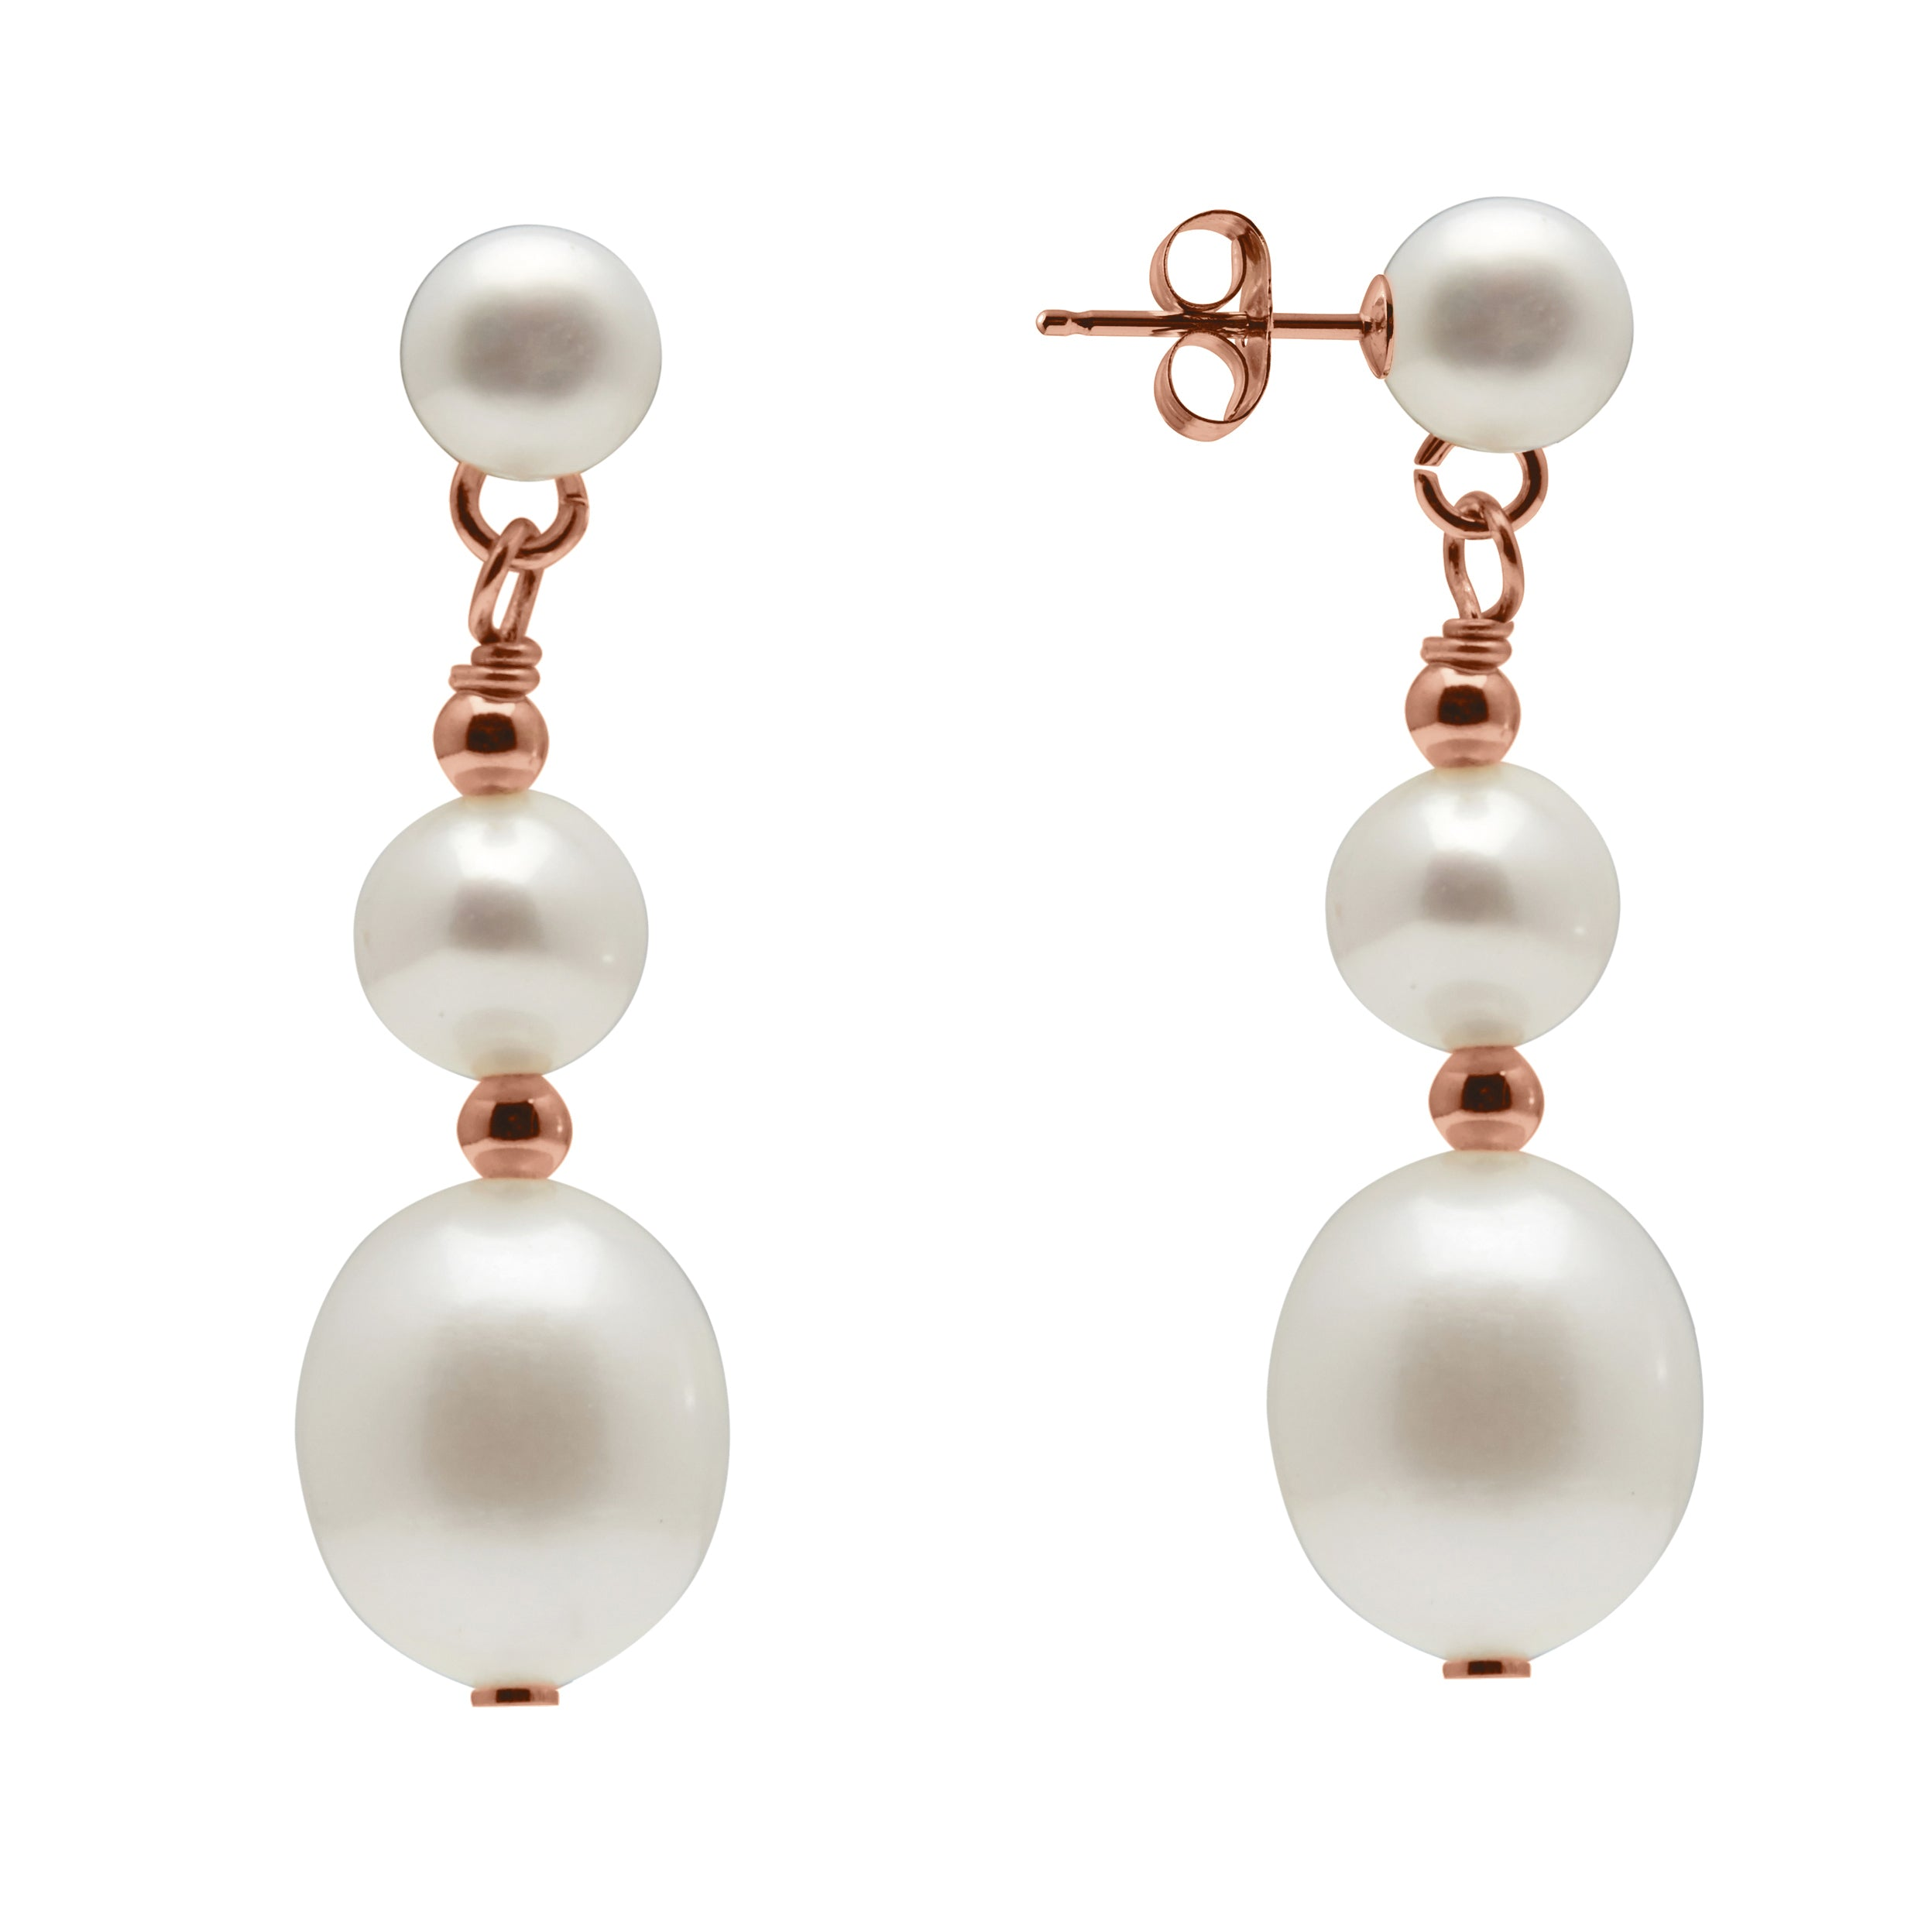 TKKP103 Kyoto Pearl Double Drop Freshwater Pearl Earrings in Rose Gold Plated 925 Silver